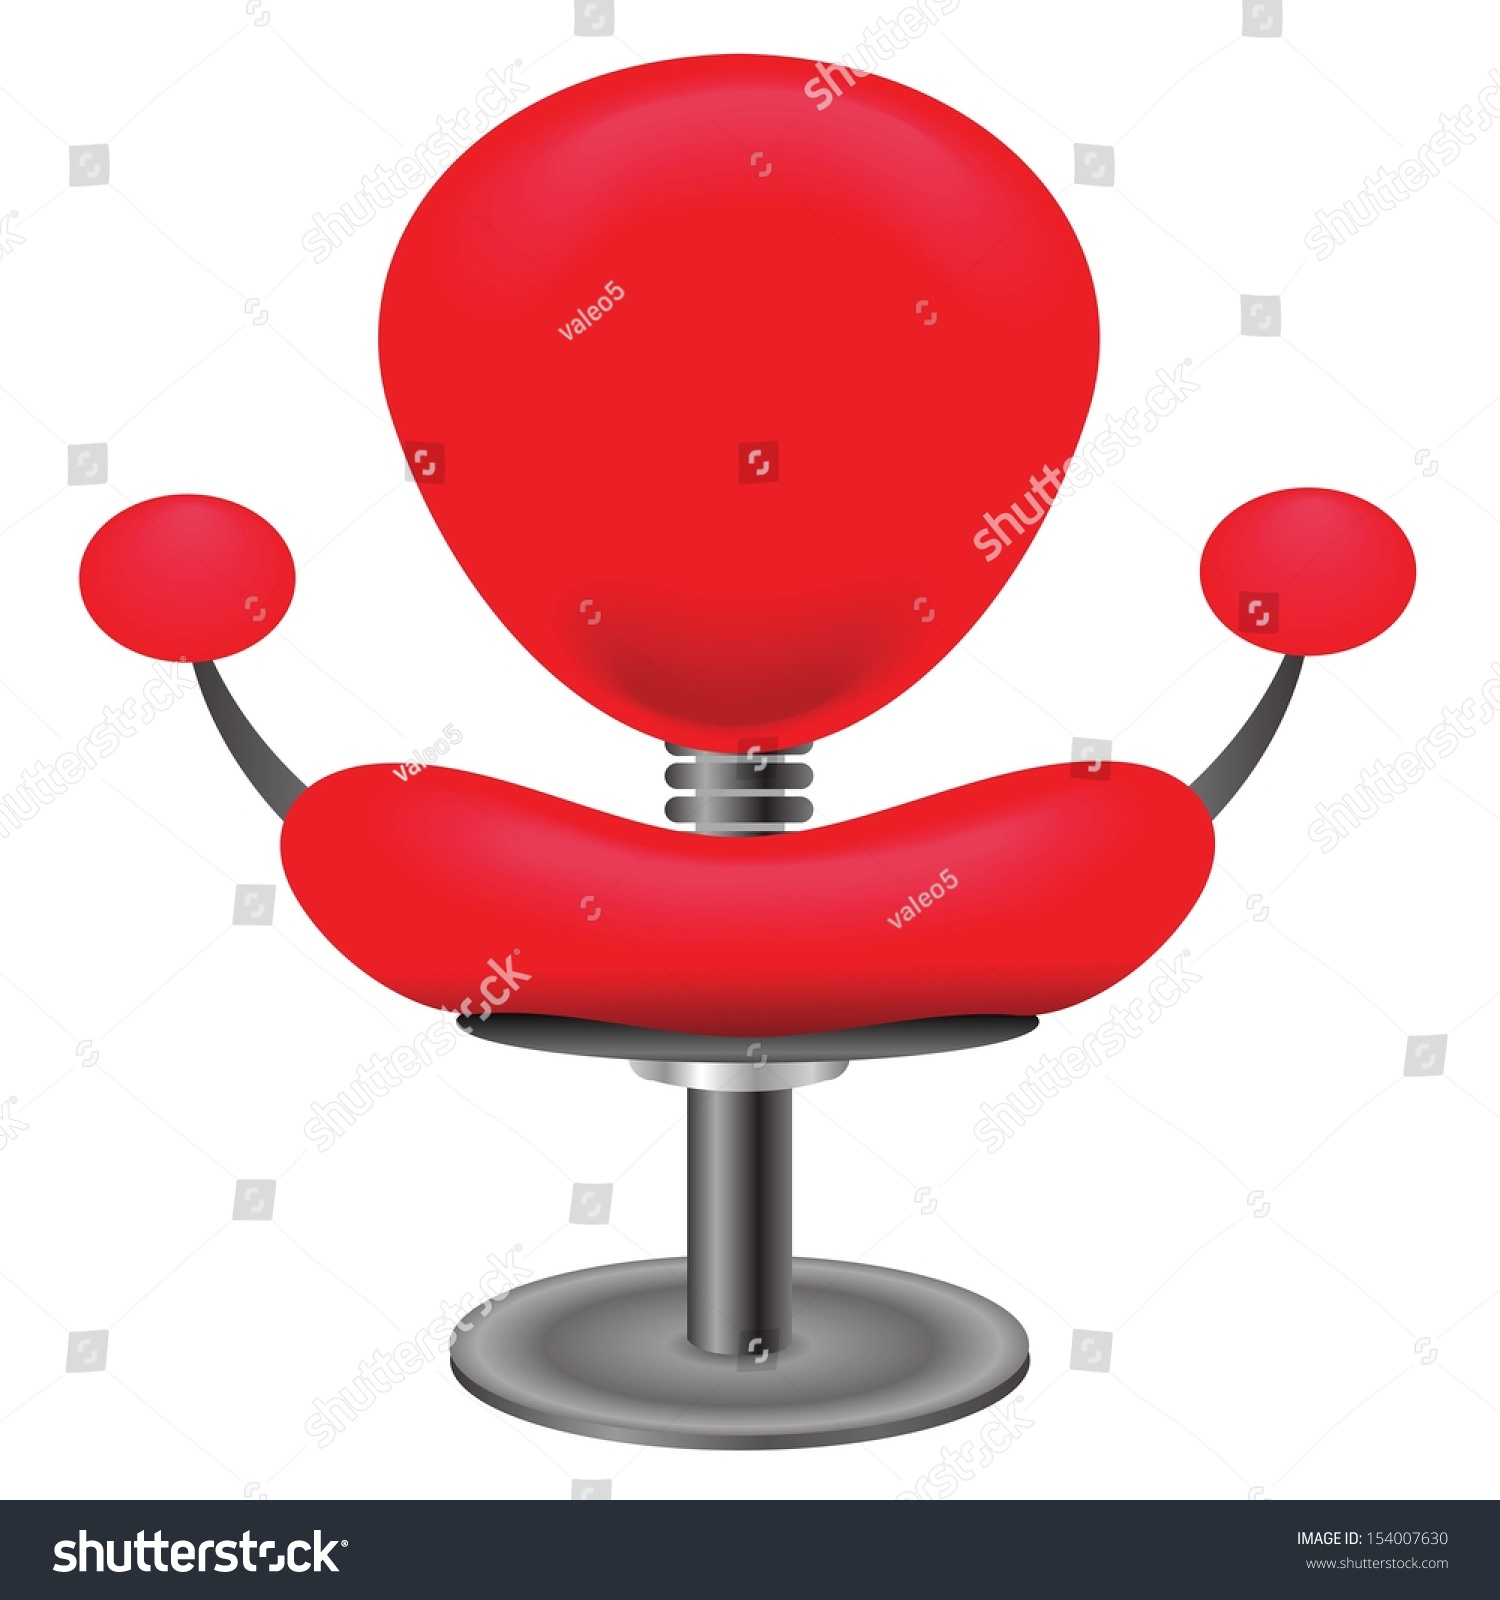 Colorful Illustration Red Chair White Stock Vector